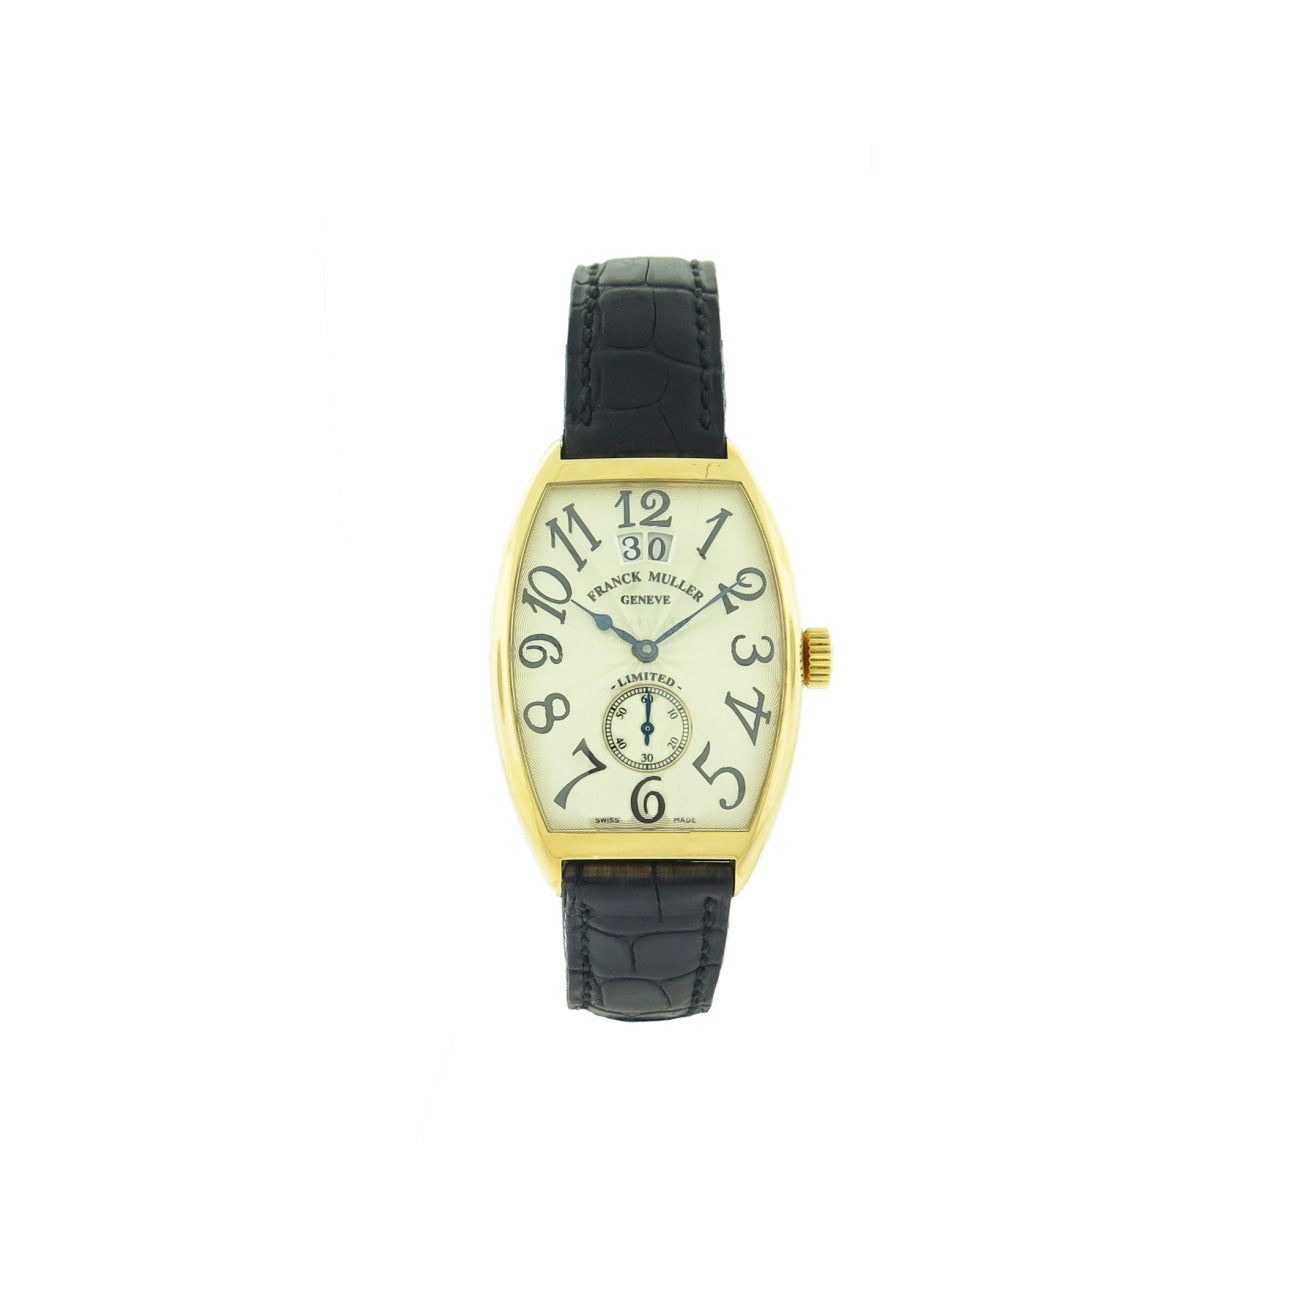 Pre-Owned Franck Muller Watches - Curvex 2851 S6 | Manfredi Jewels